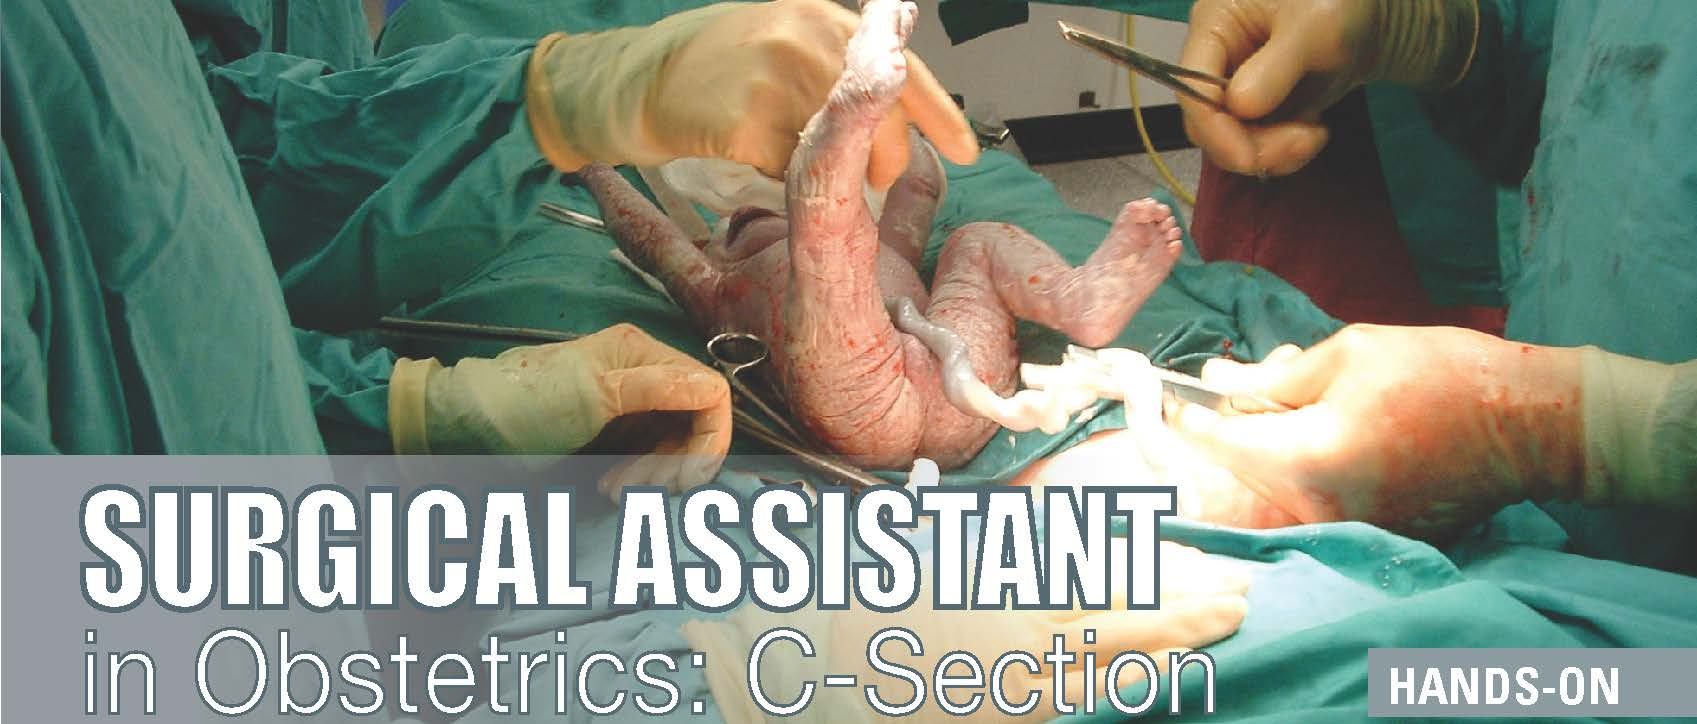 Surgical Assistant in Obstetrics: C-Section (ME9212